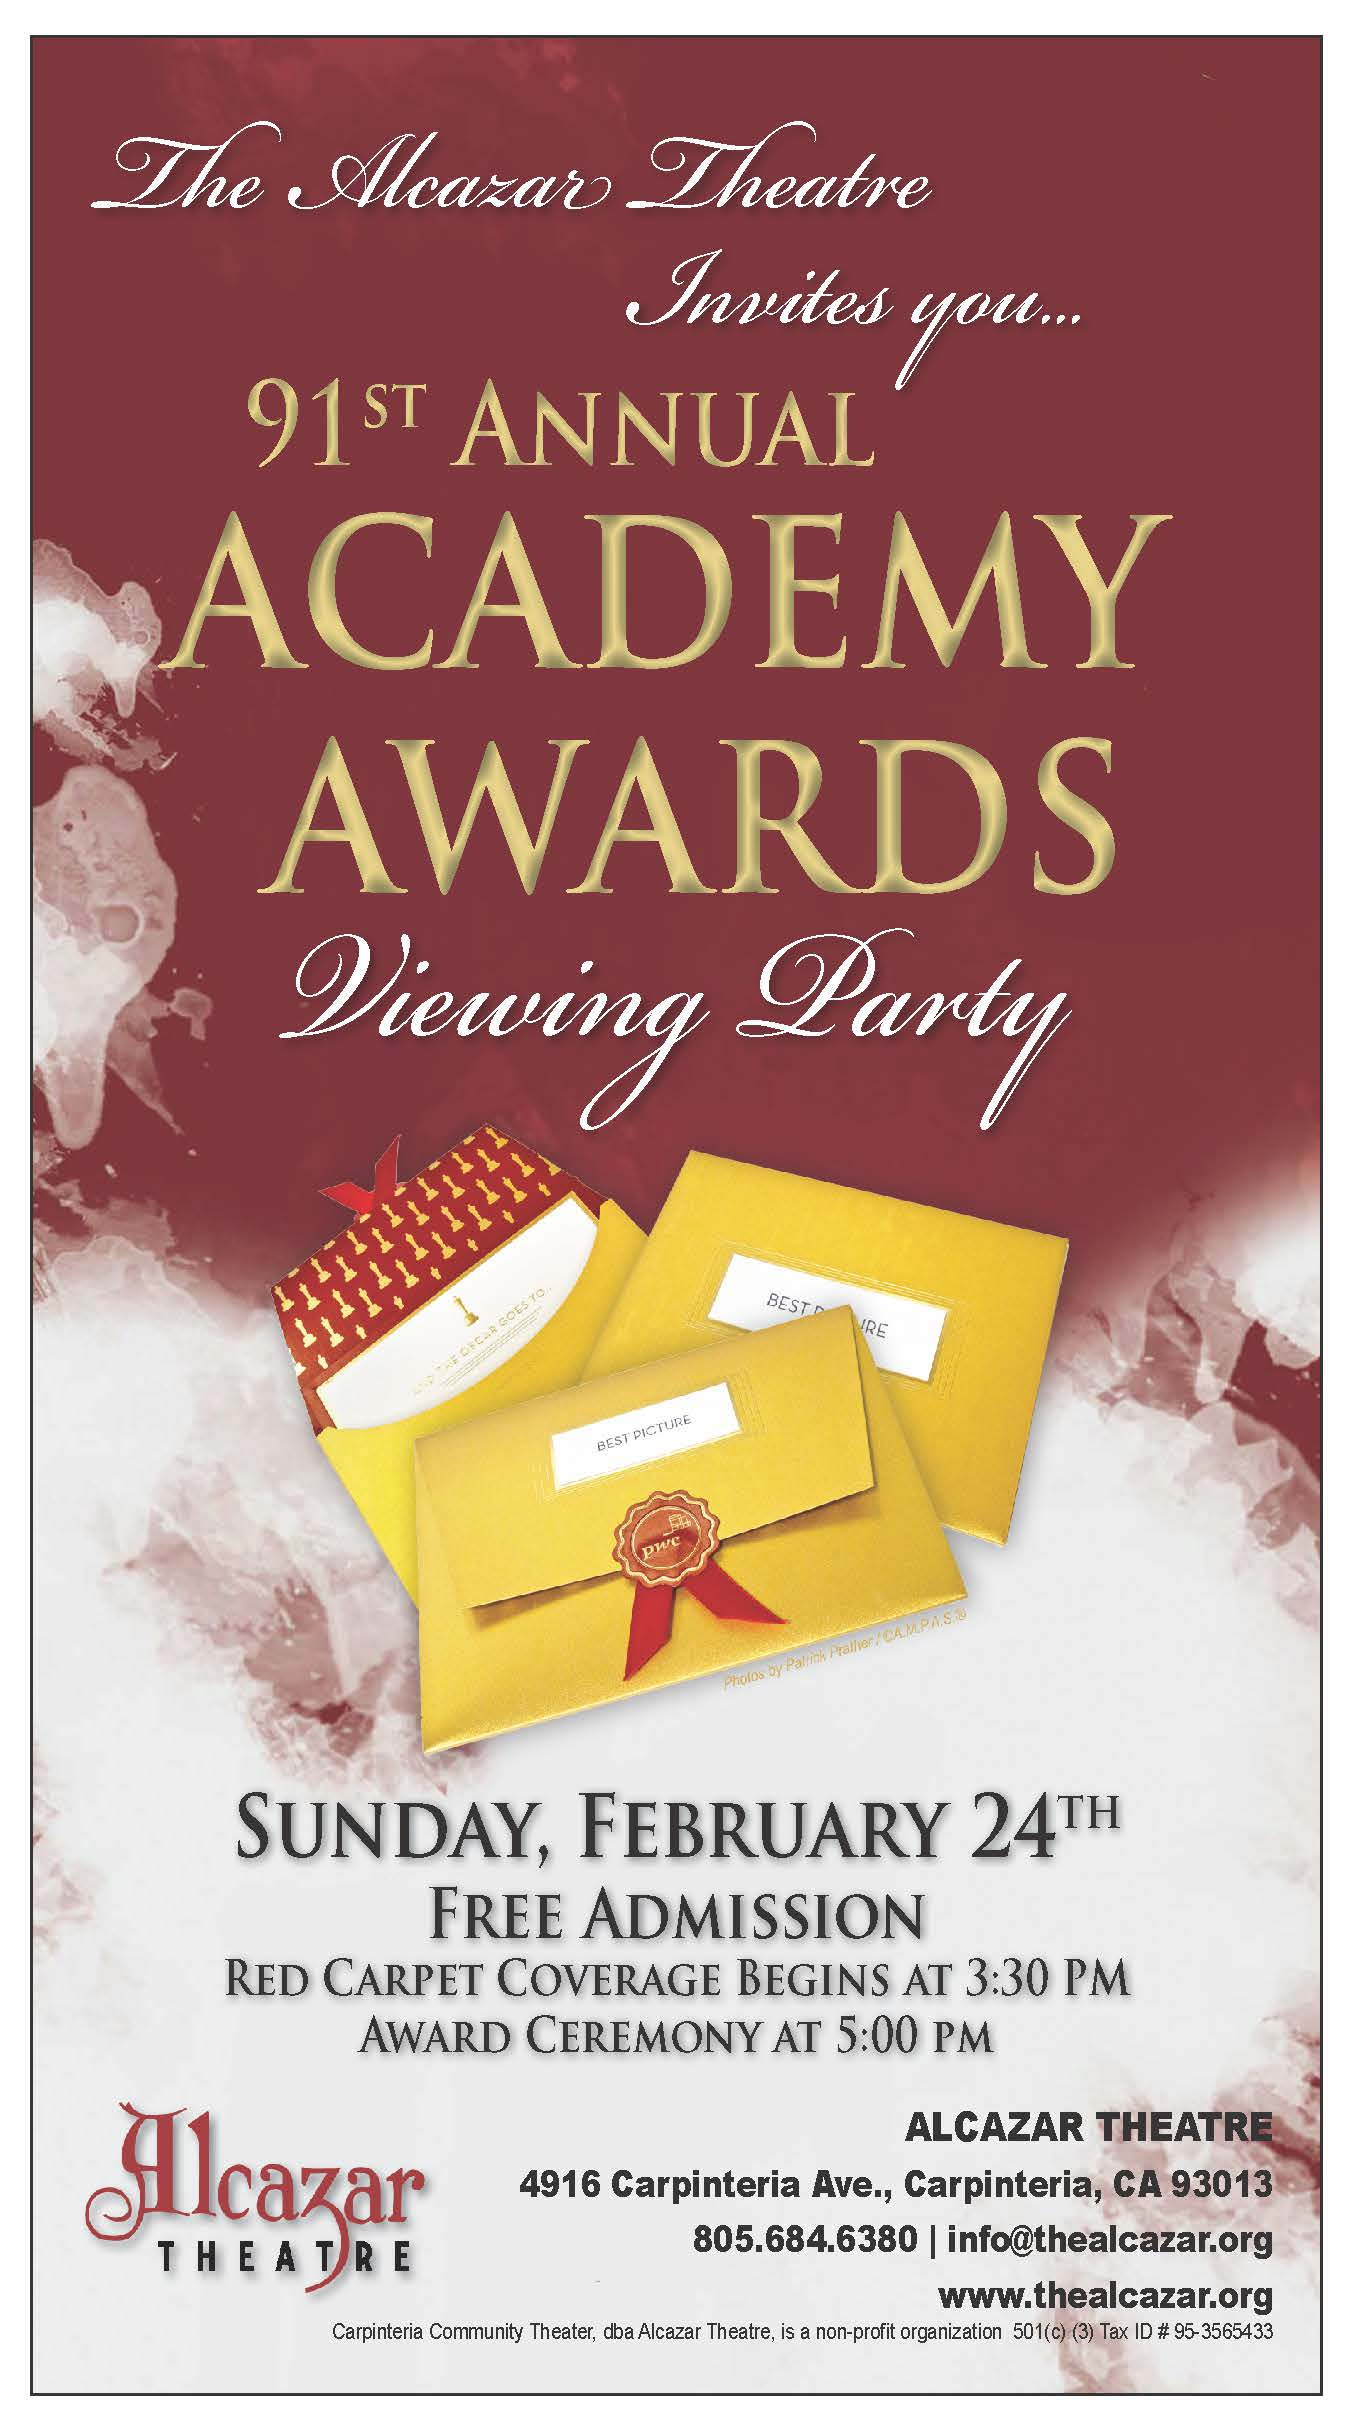 FREE EVENT: Academy Awards Viewing Party